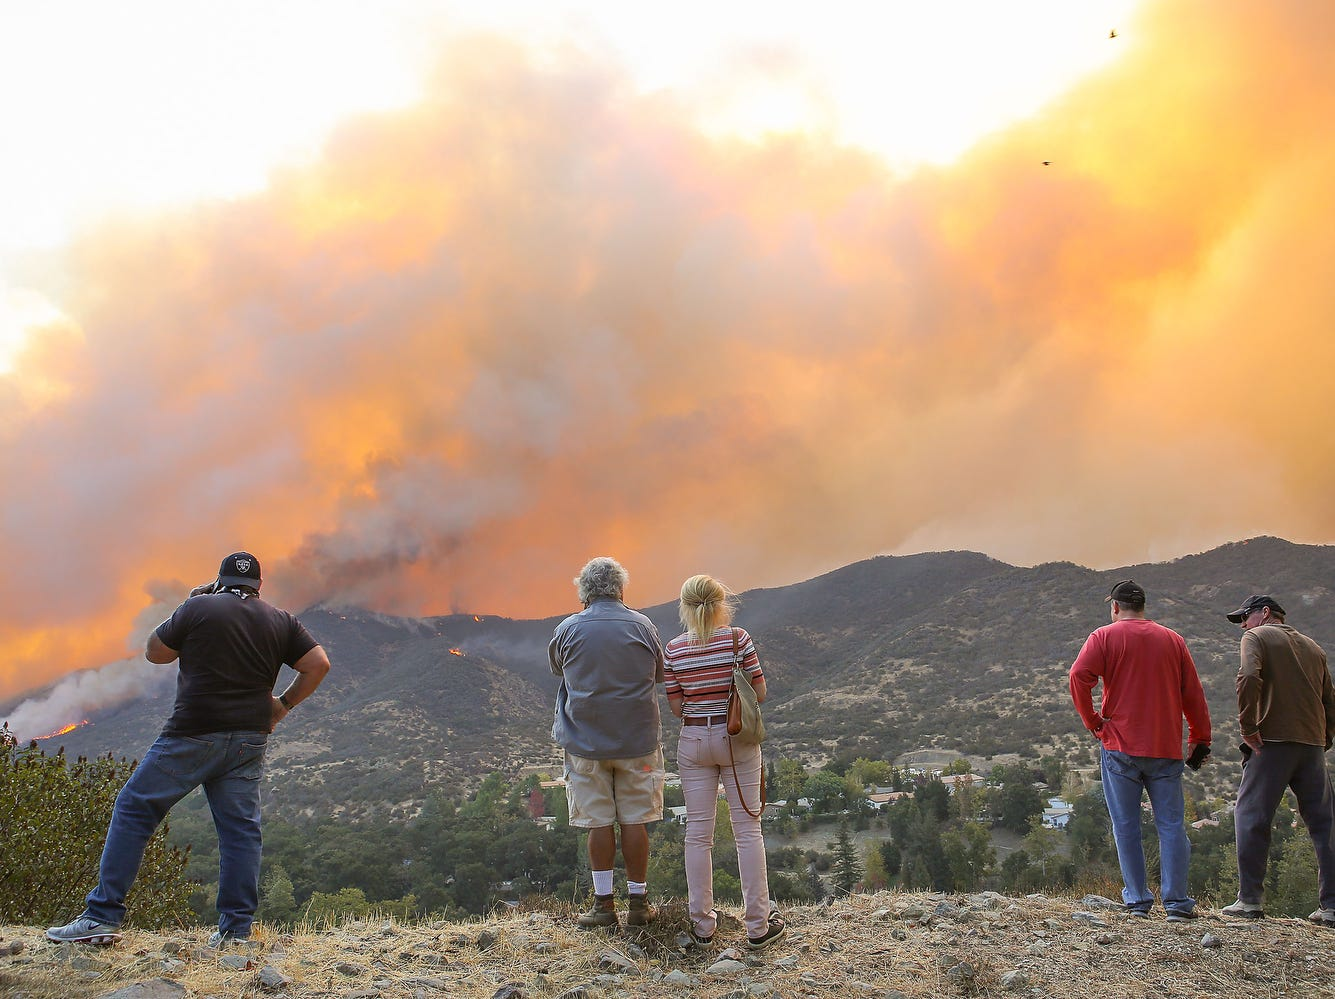 Residents of Westlake Village, Calif. watch the Woolsey Fire as it surrounds Triunfo Canyon on Friday.